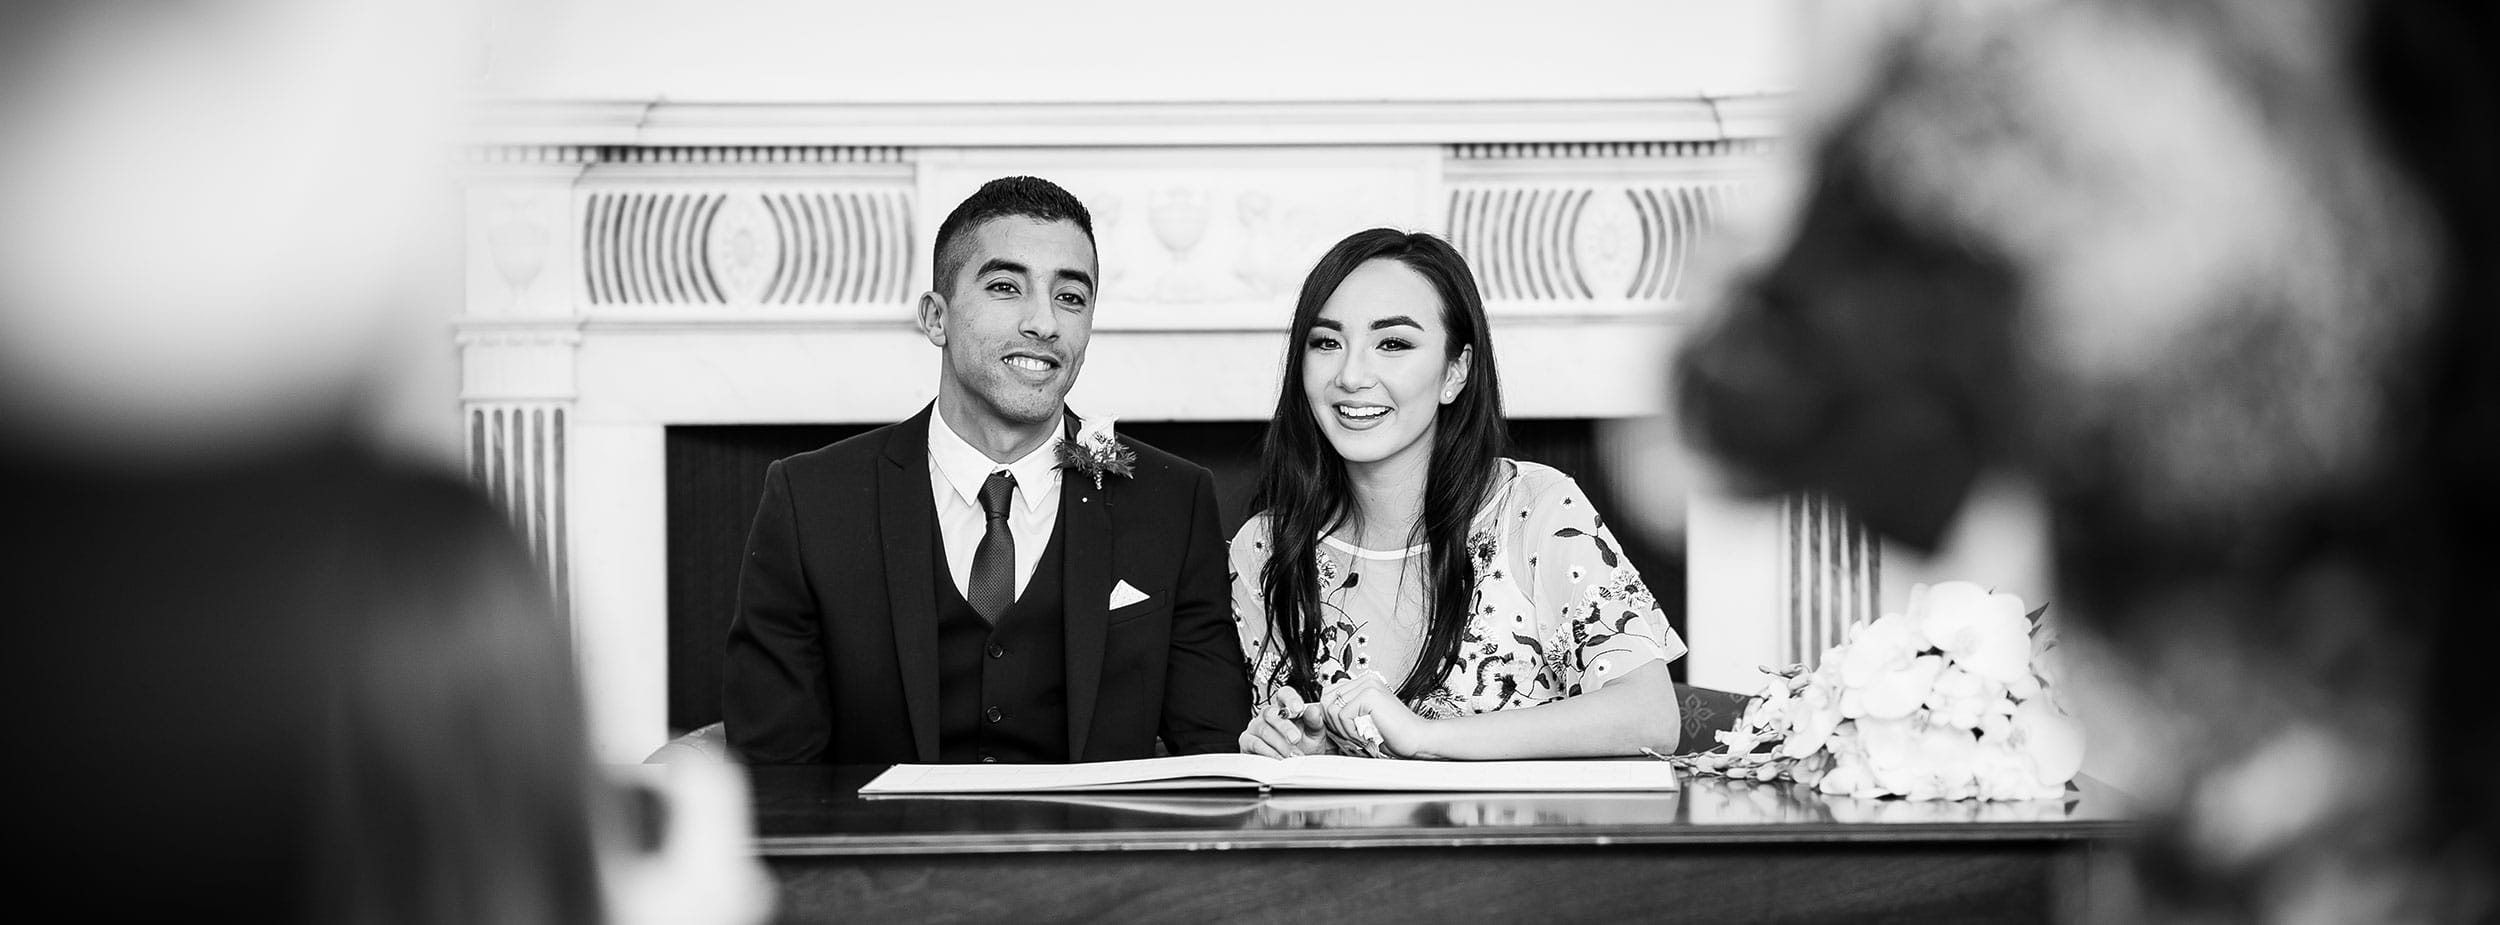 Bromley Registry Office Wedding Photographer London 1